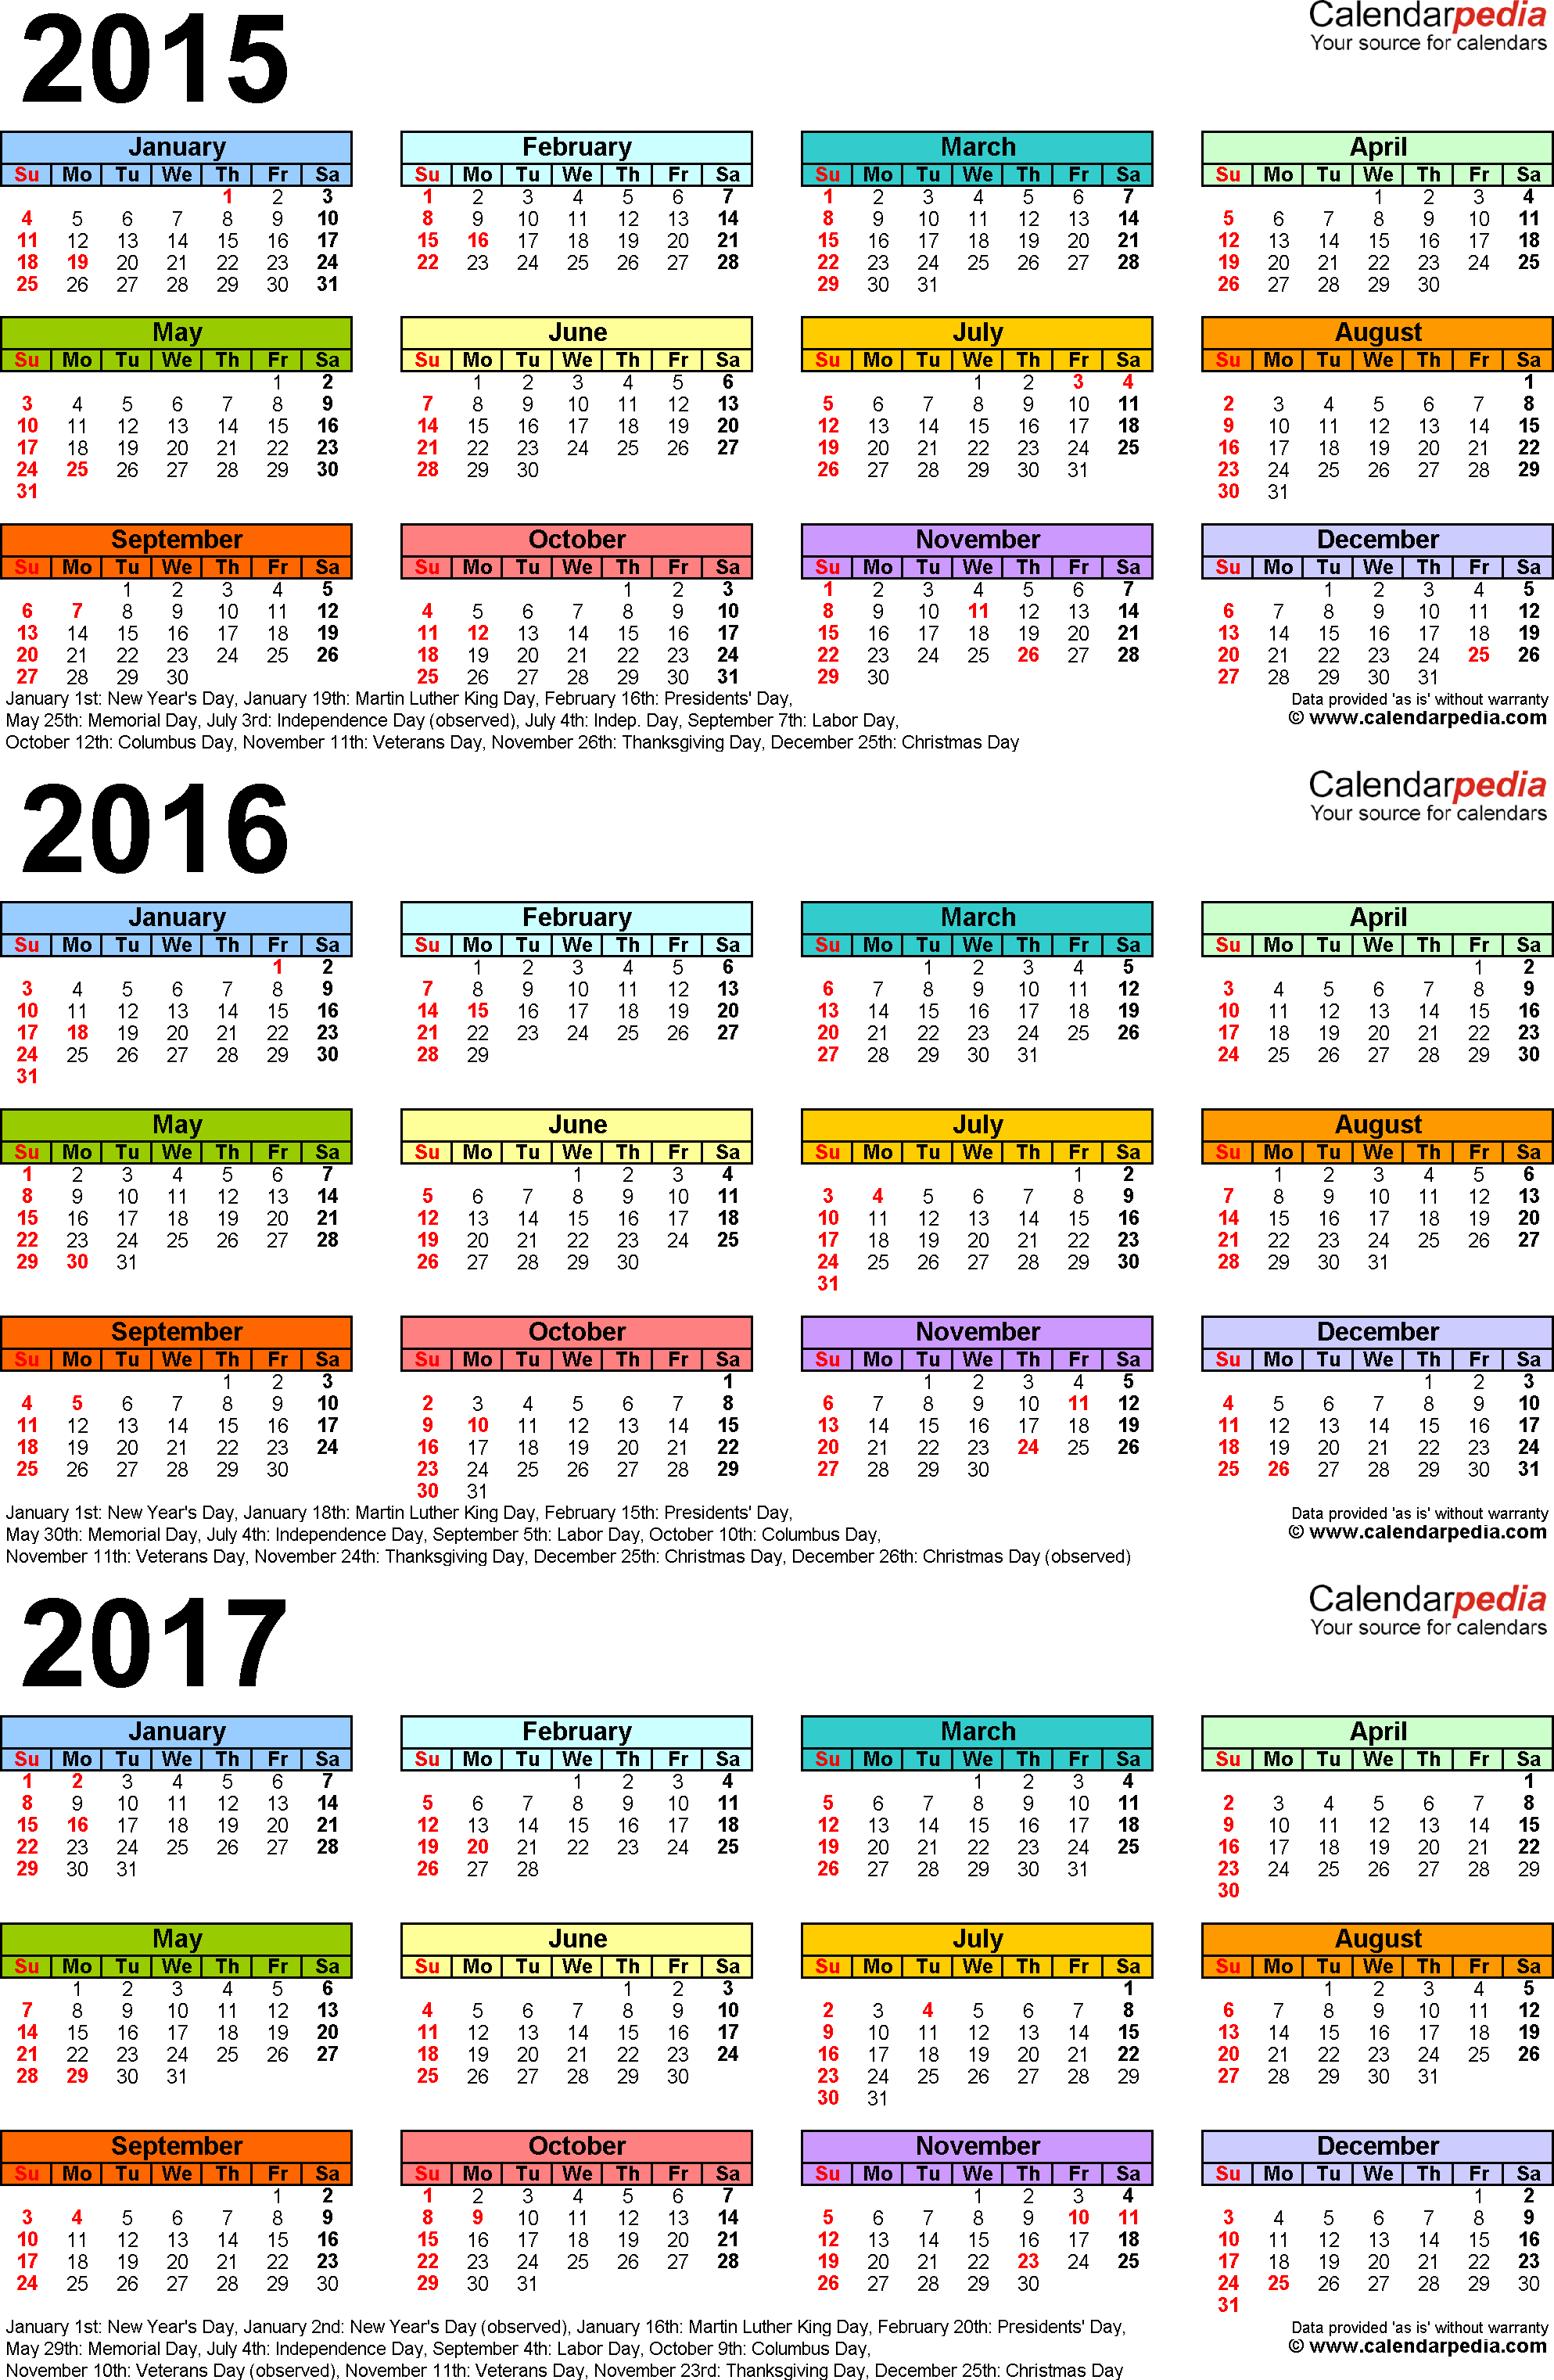 Template 3: Word template for three year calendar 2015-2017 (portrait orientation, 1 page, in color)